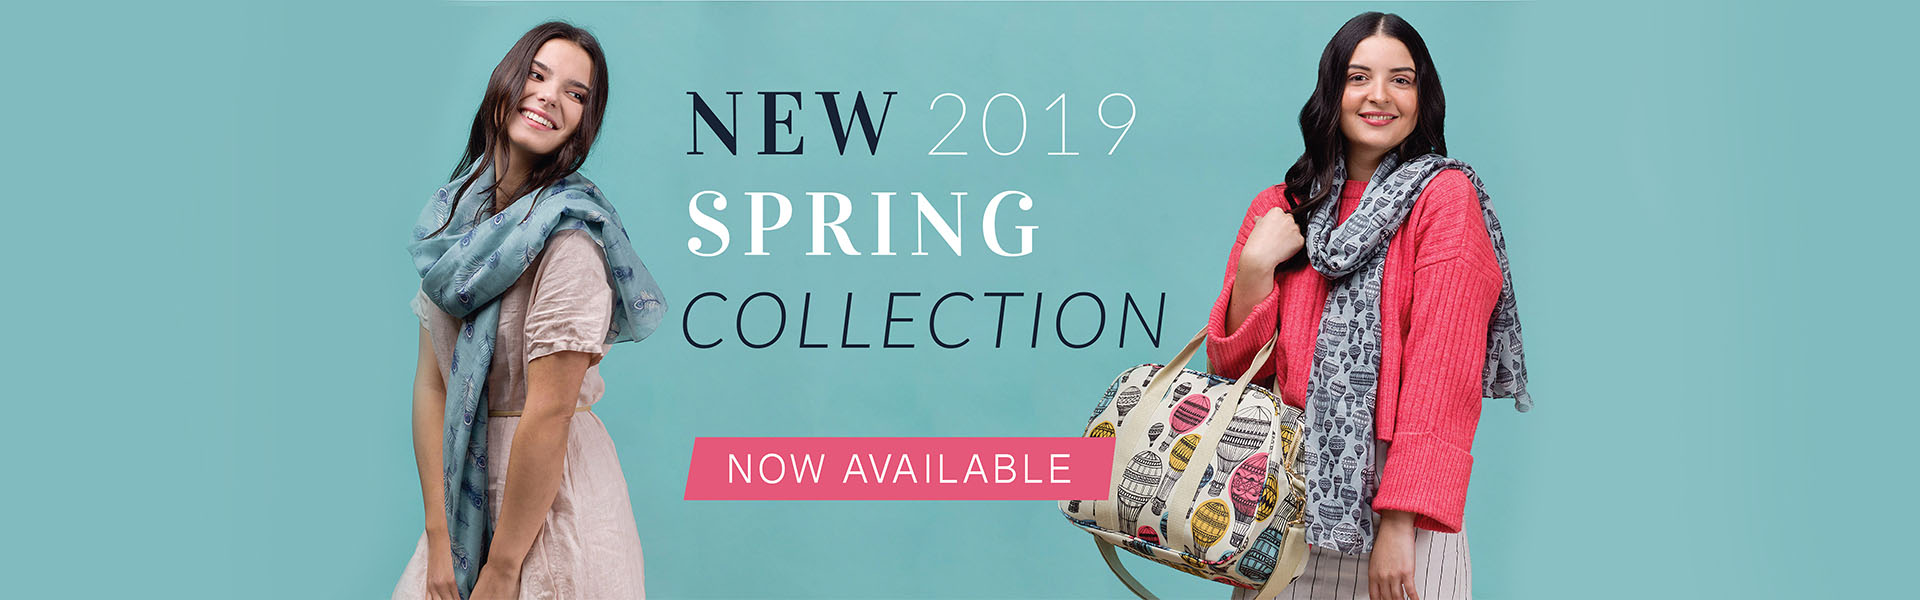 Spring 2019 Collection